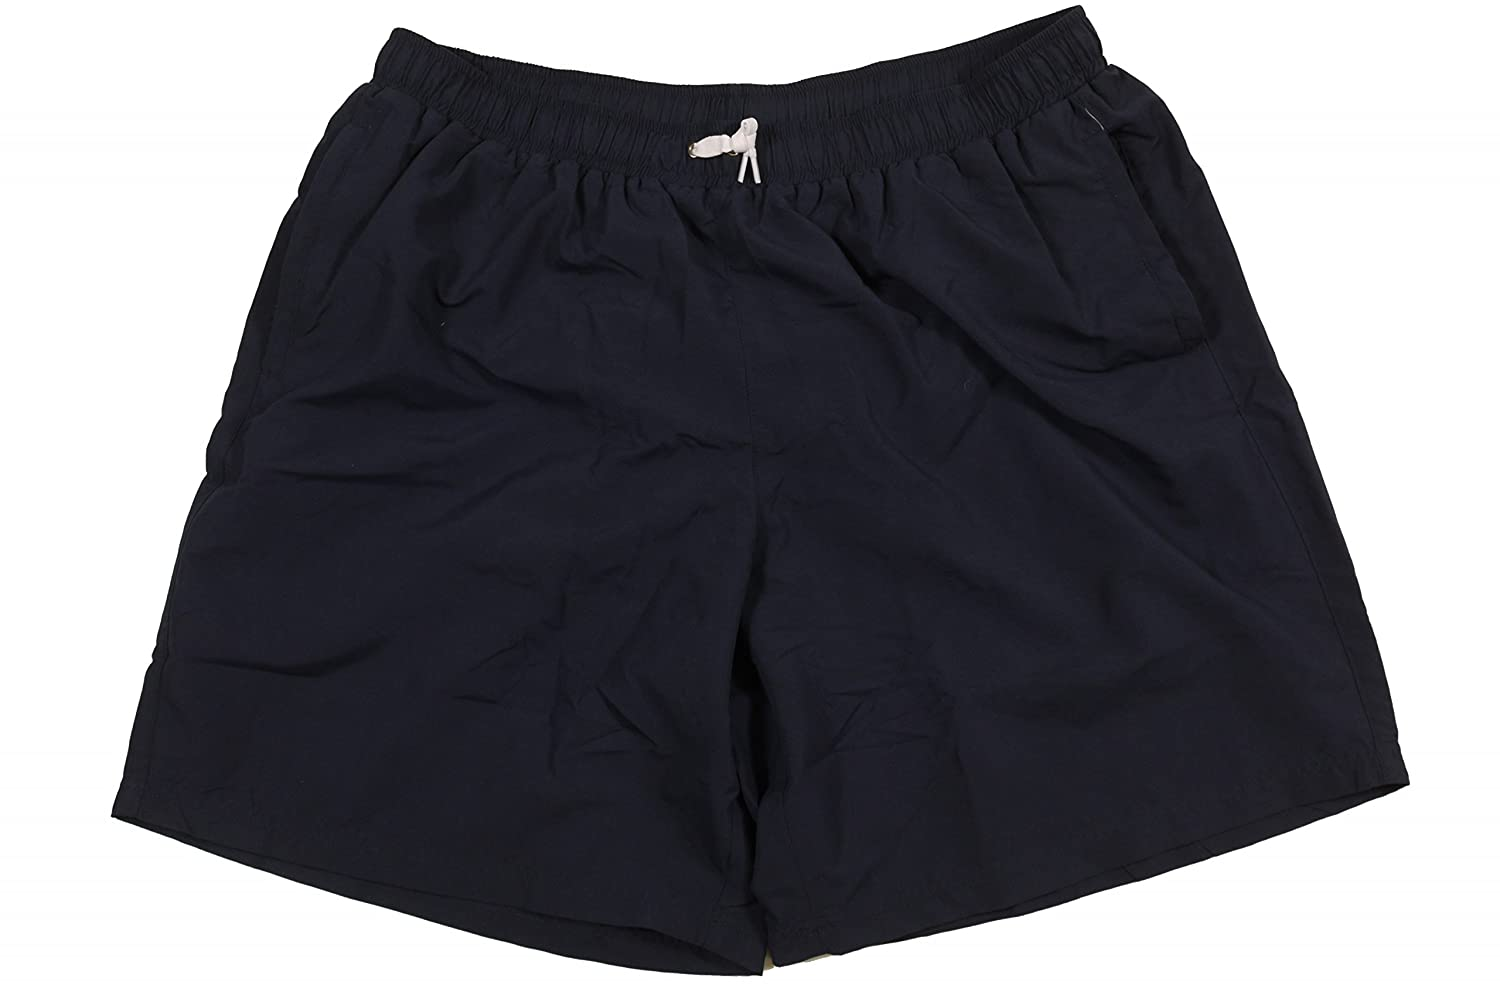 'Swim Shorts By Abraxas in large sizes?-?Navy